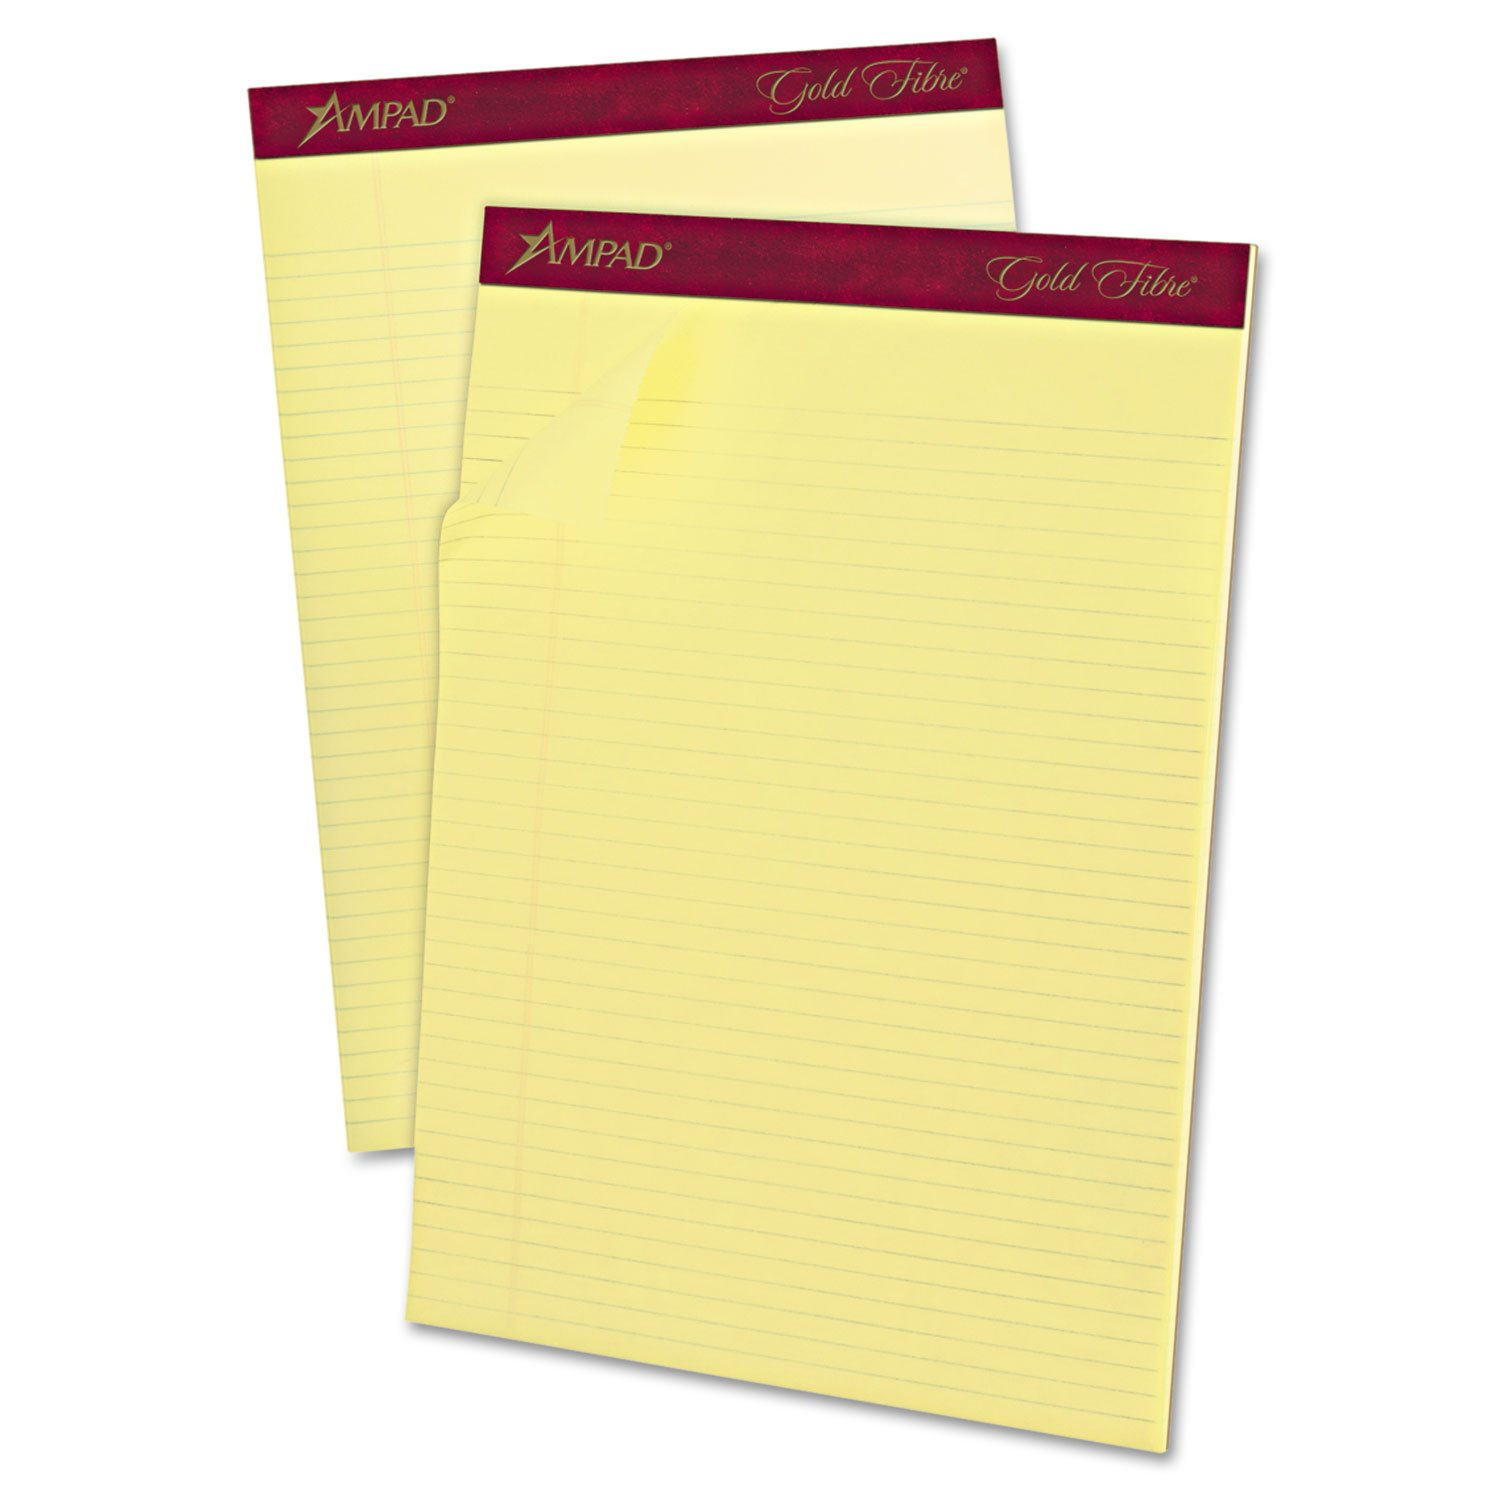 Ampad 20022 Perforated Pads,Narrow,50 Shts,8-1/2-Inch x11-3/4-Inch,Canary by Ampad